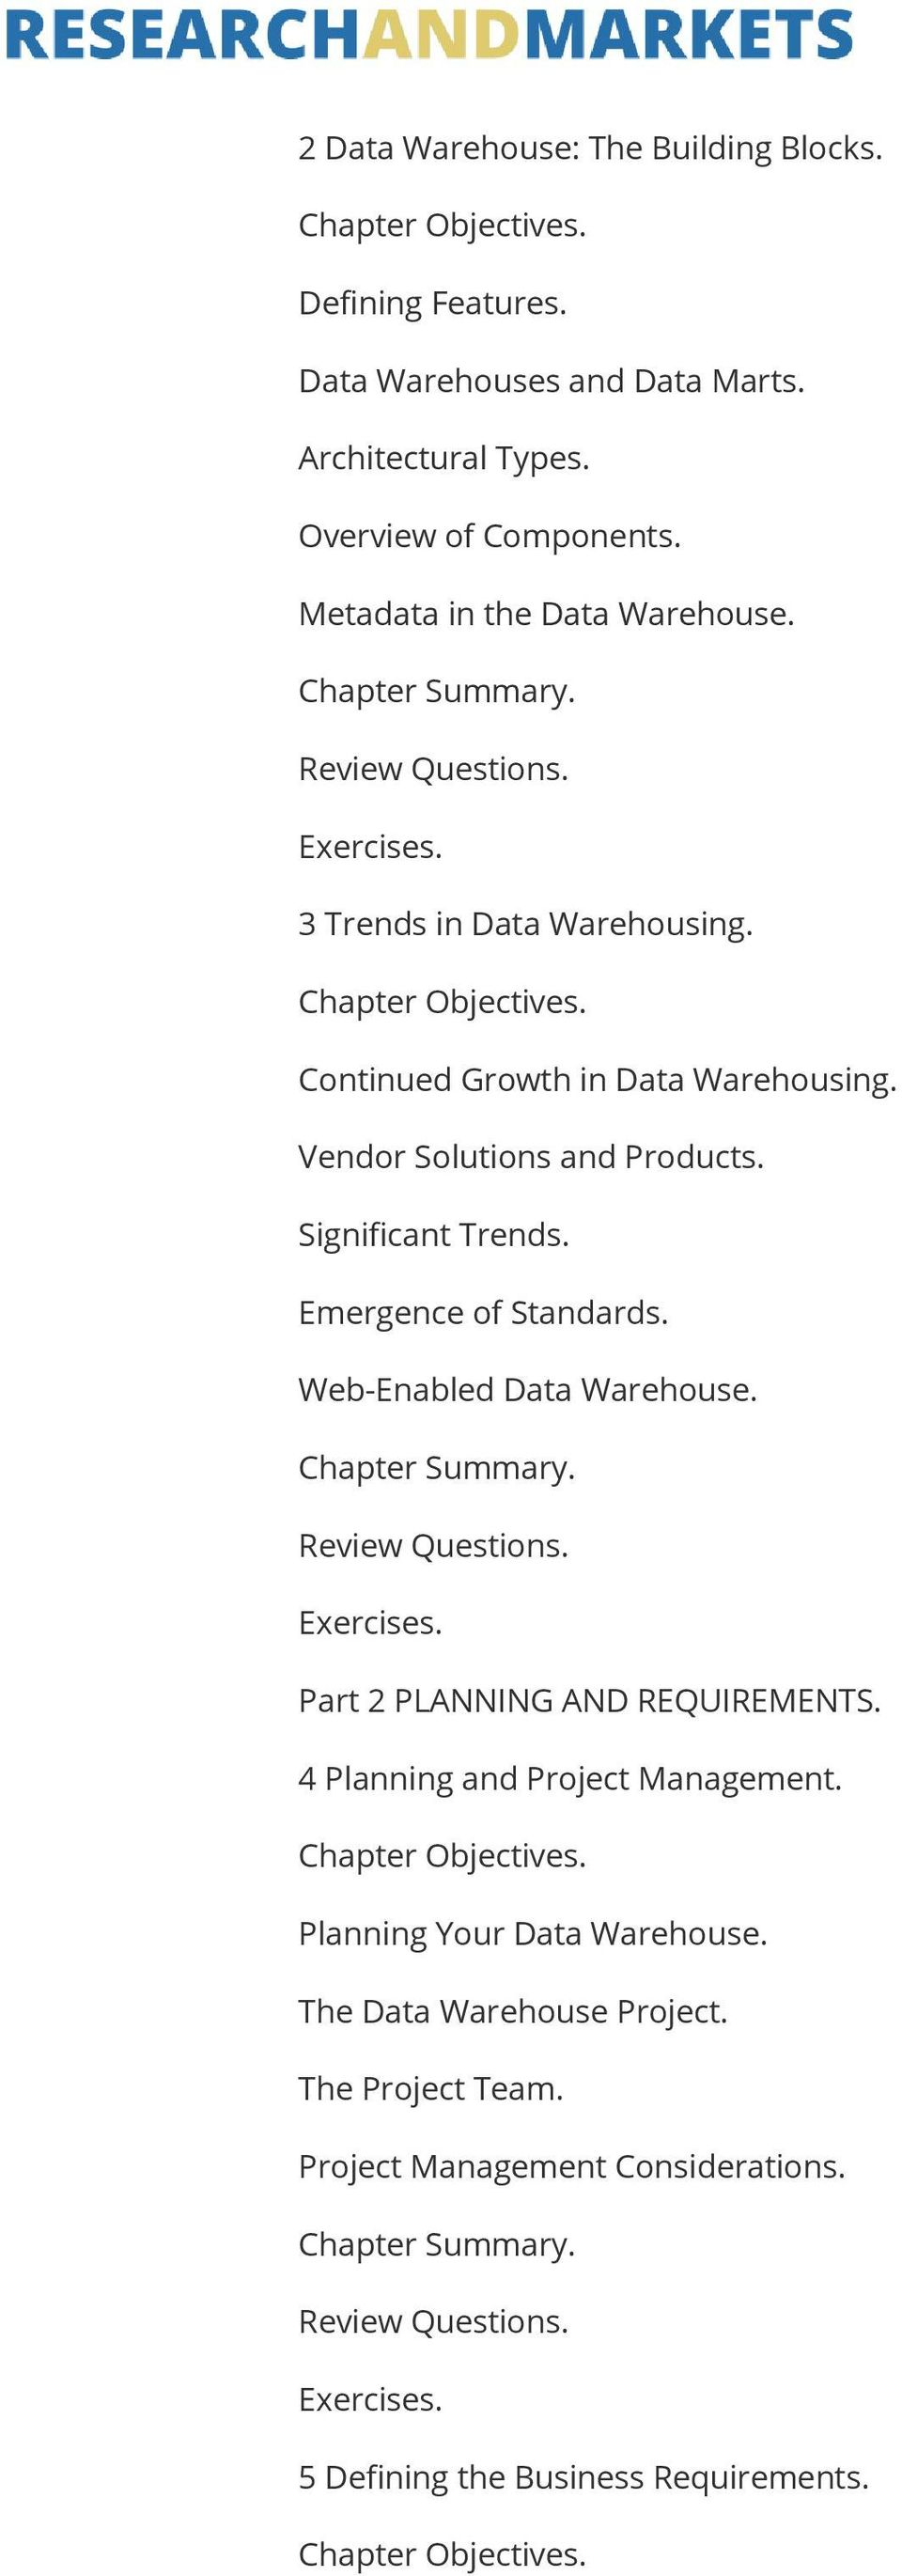 Significant Trends. Emergence of Standards. Web-Enabled Data Warehouse. Part 2 PLANNING AND REQUIREMENTS.